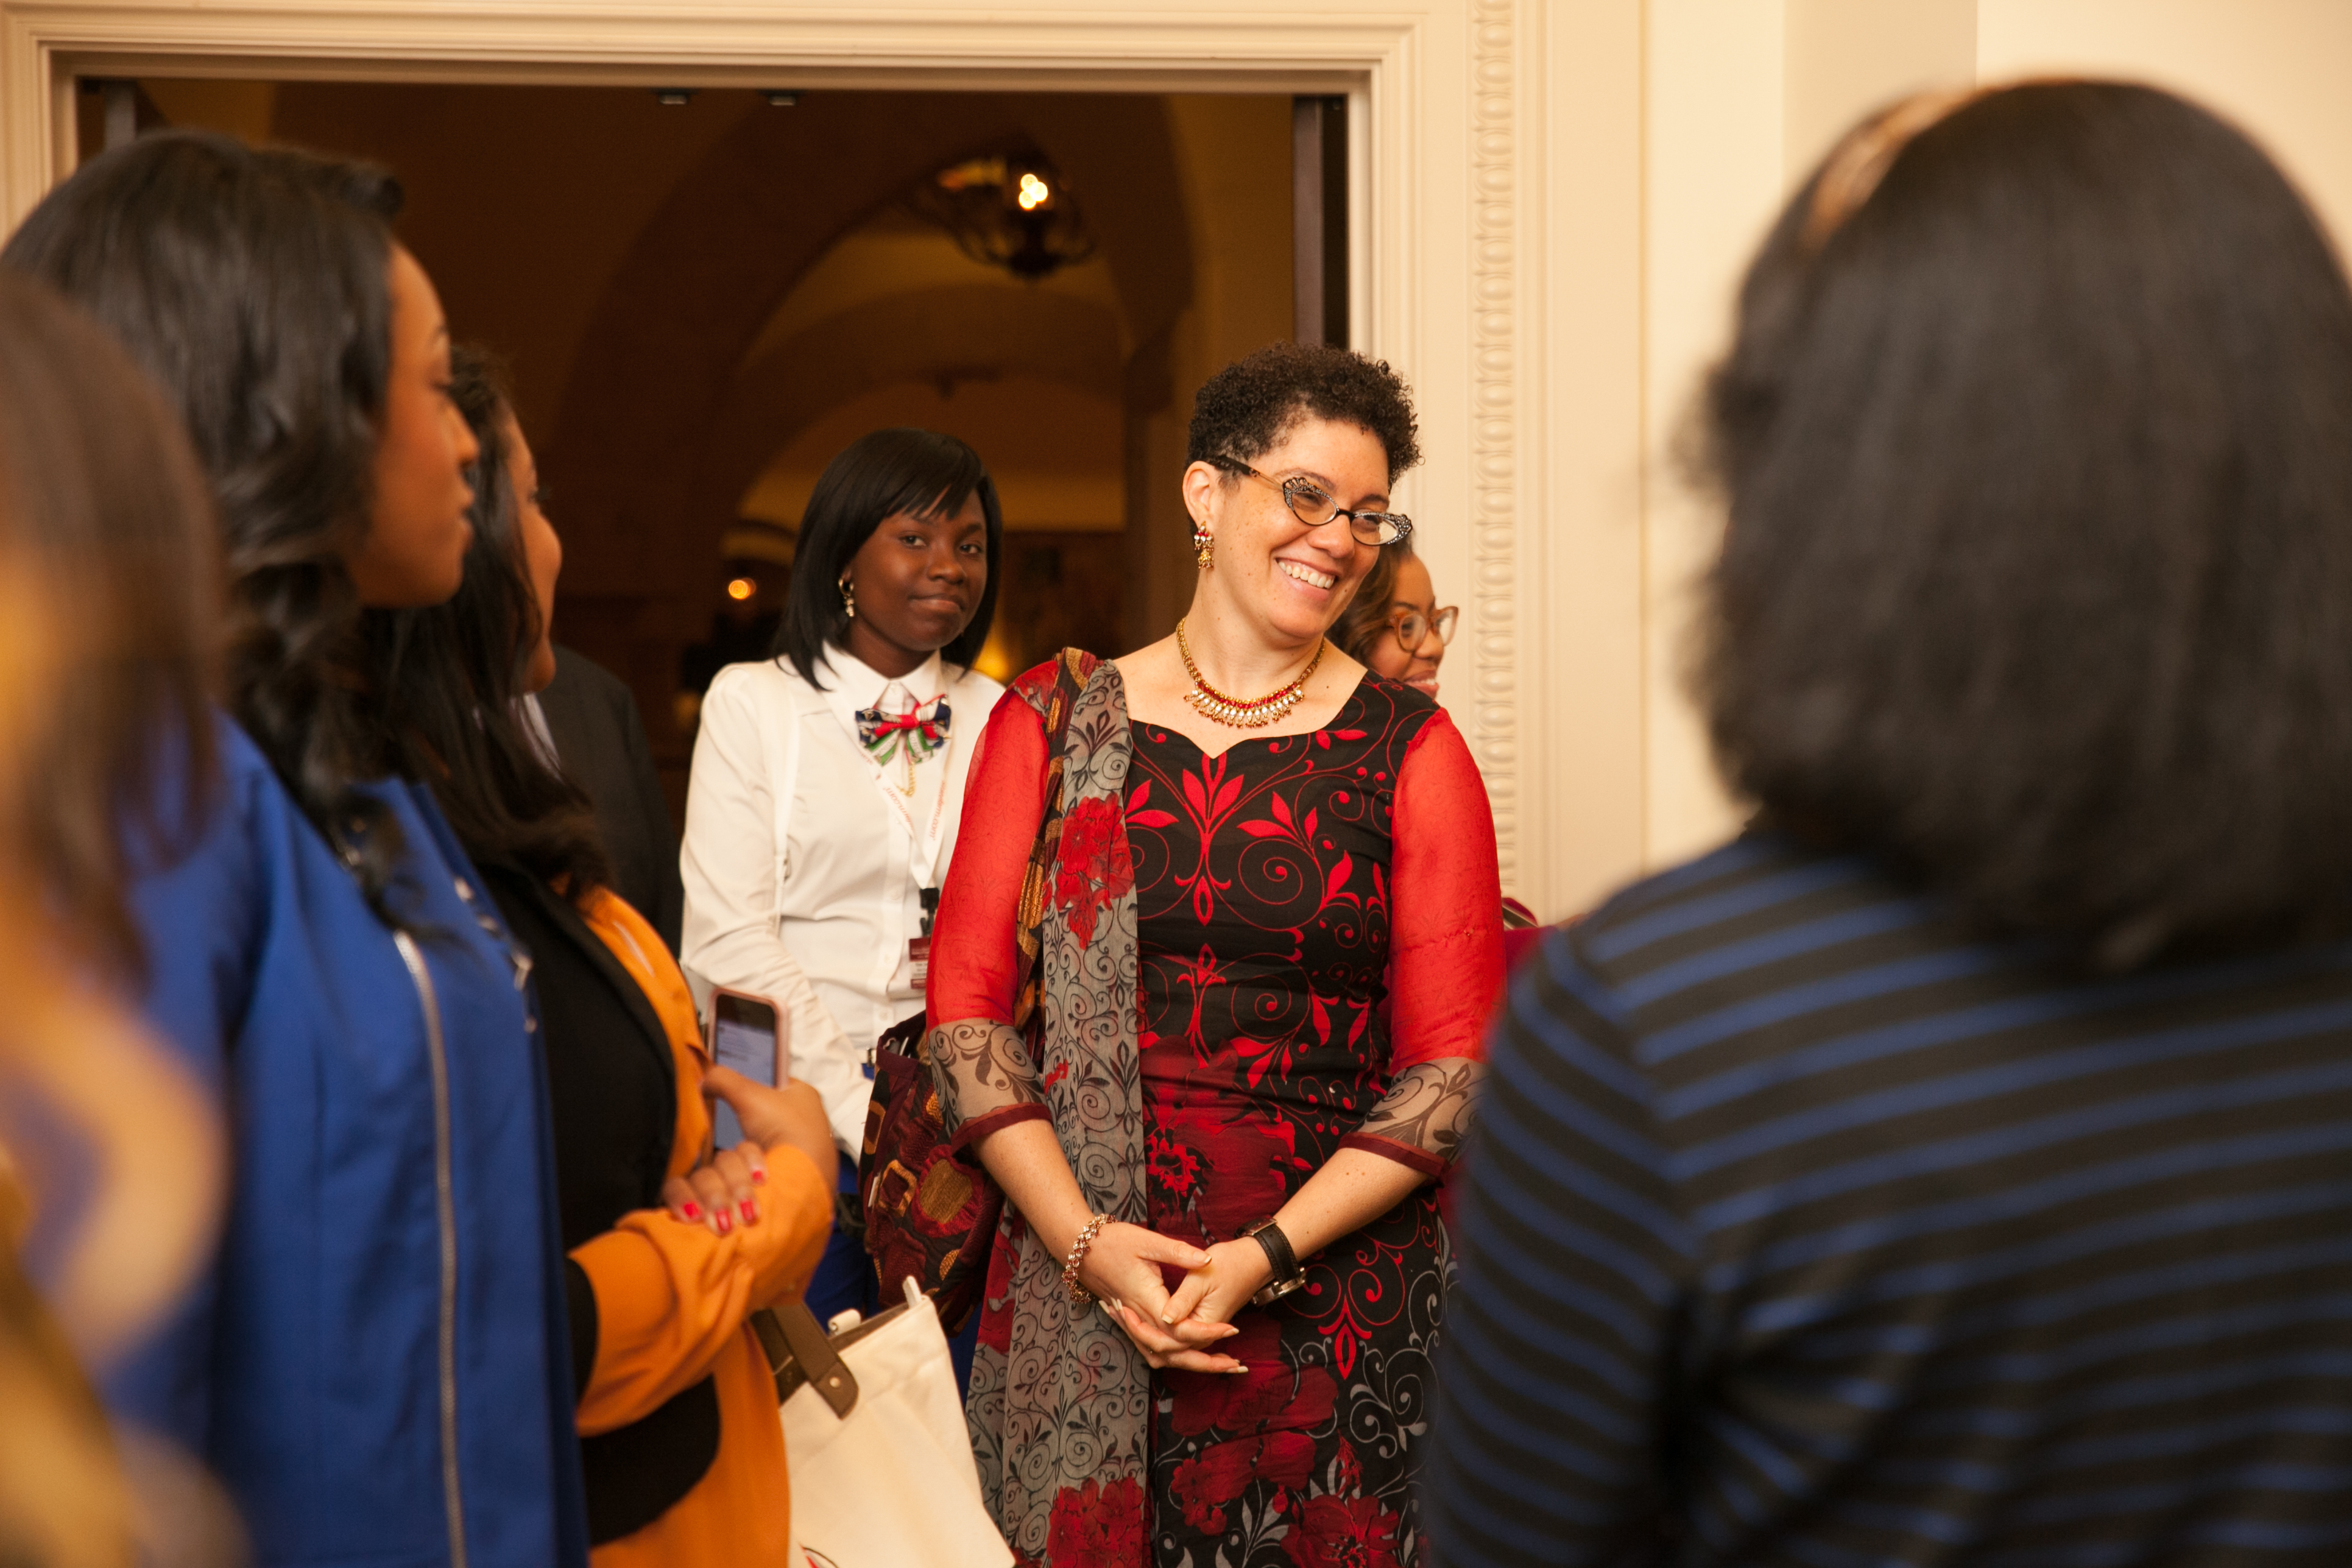 Walsh shares a moment with the HBCU students who attended the symposium and Thought Leaders Dinner at WPS. The input from these young women proved invaluable in the development of strategies focused on talent development, sponsorship and college financing, among others.